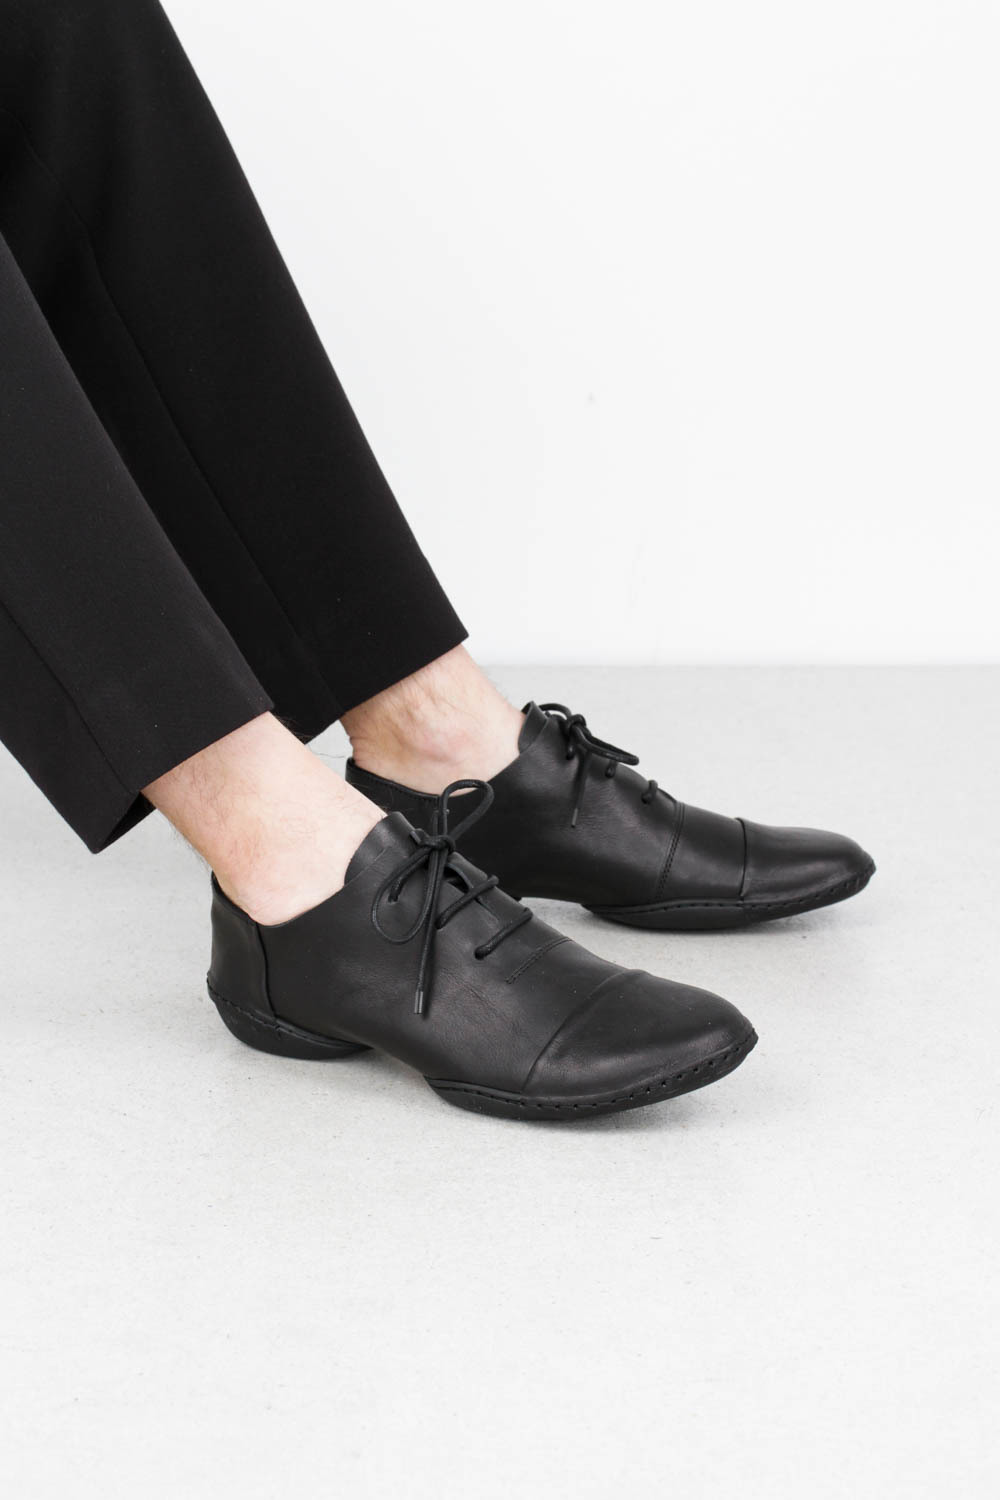 Trippen cello black waw s blk leathershoe1